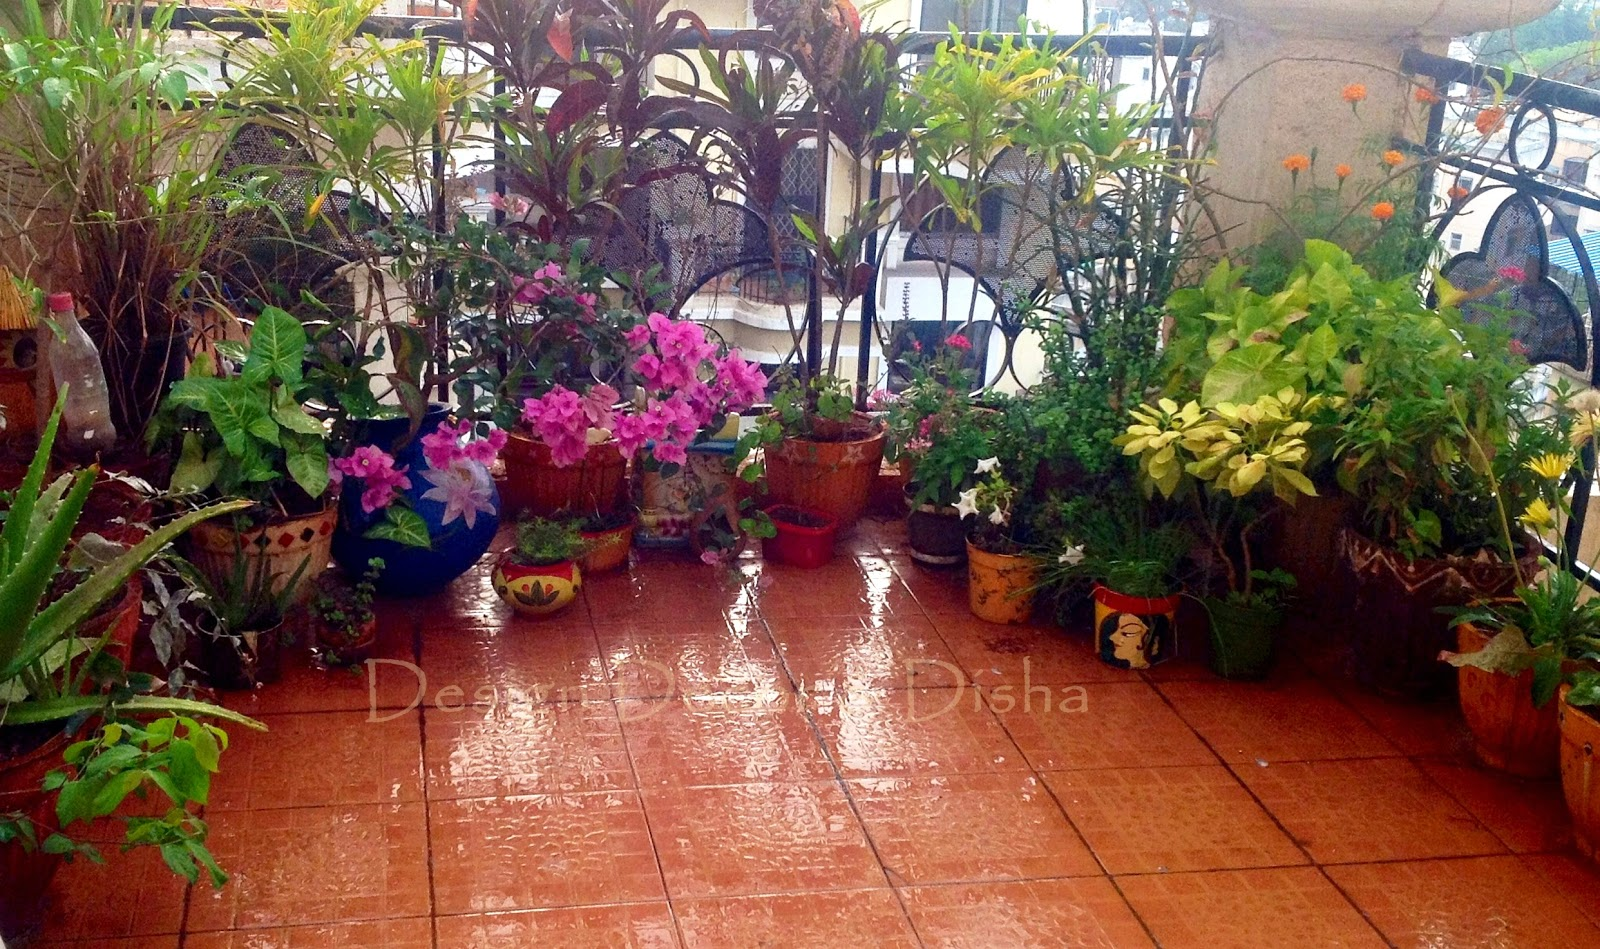 Design Decor & Disha My Balcony Garden Makeover